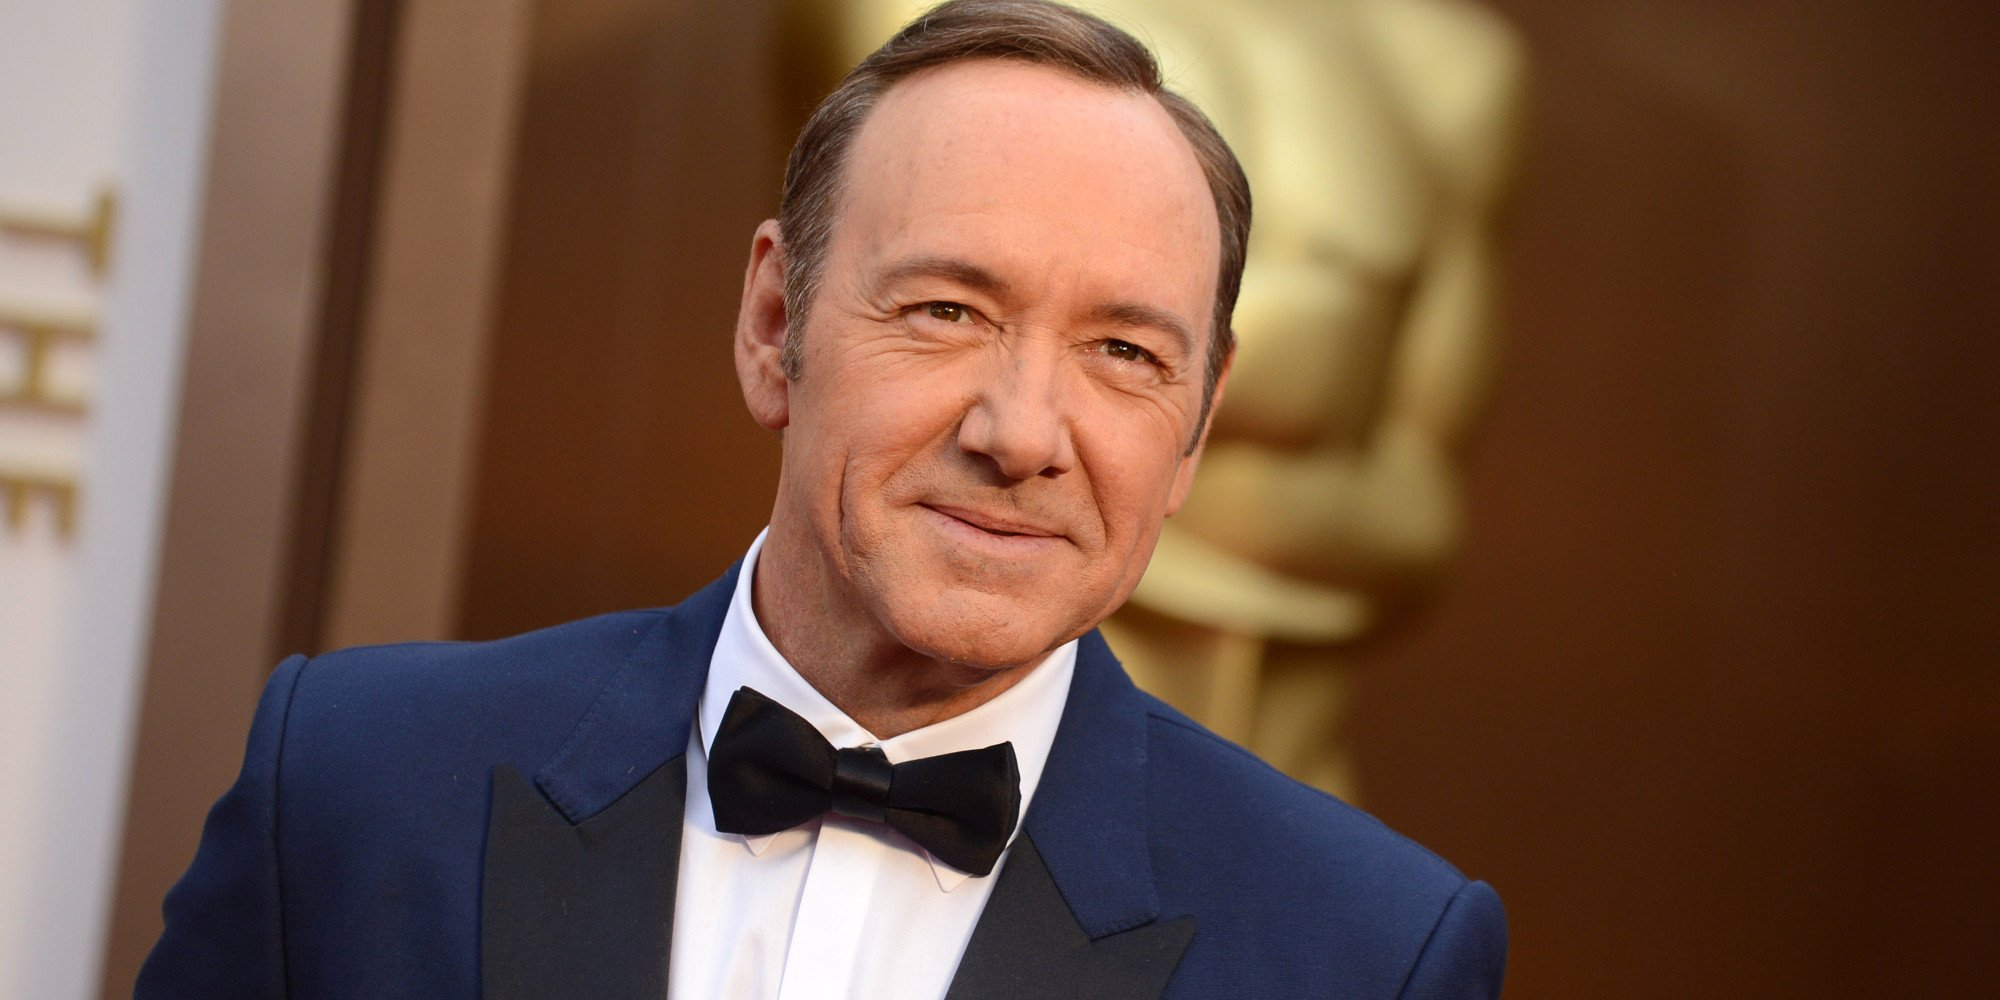 Kevin Spacey Comes Out As Gay After Sexual Advance Allegation